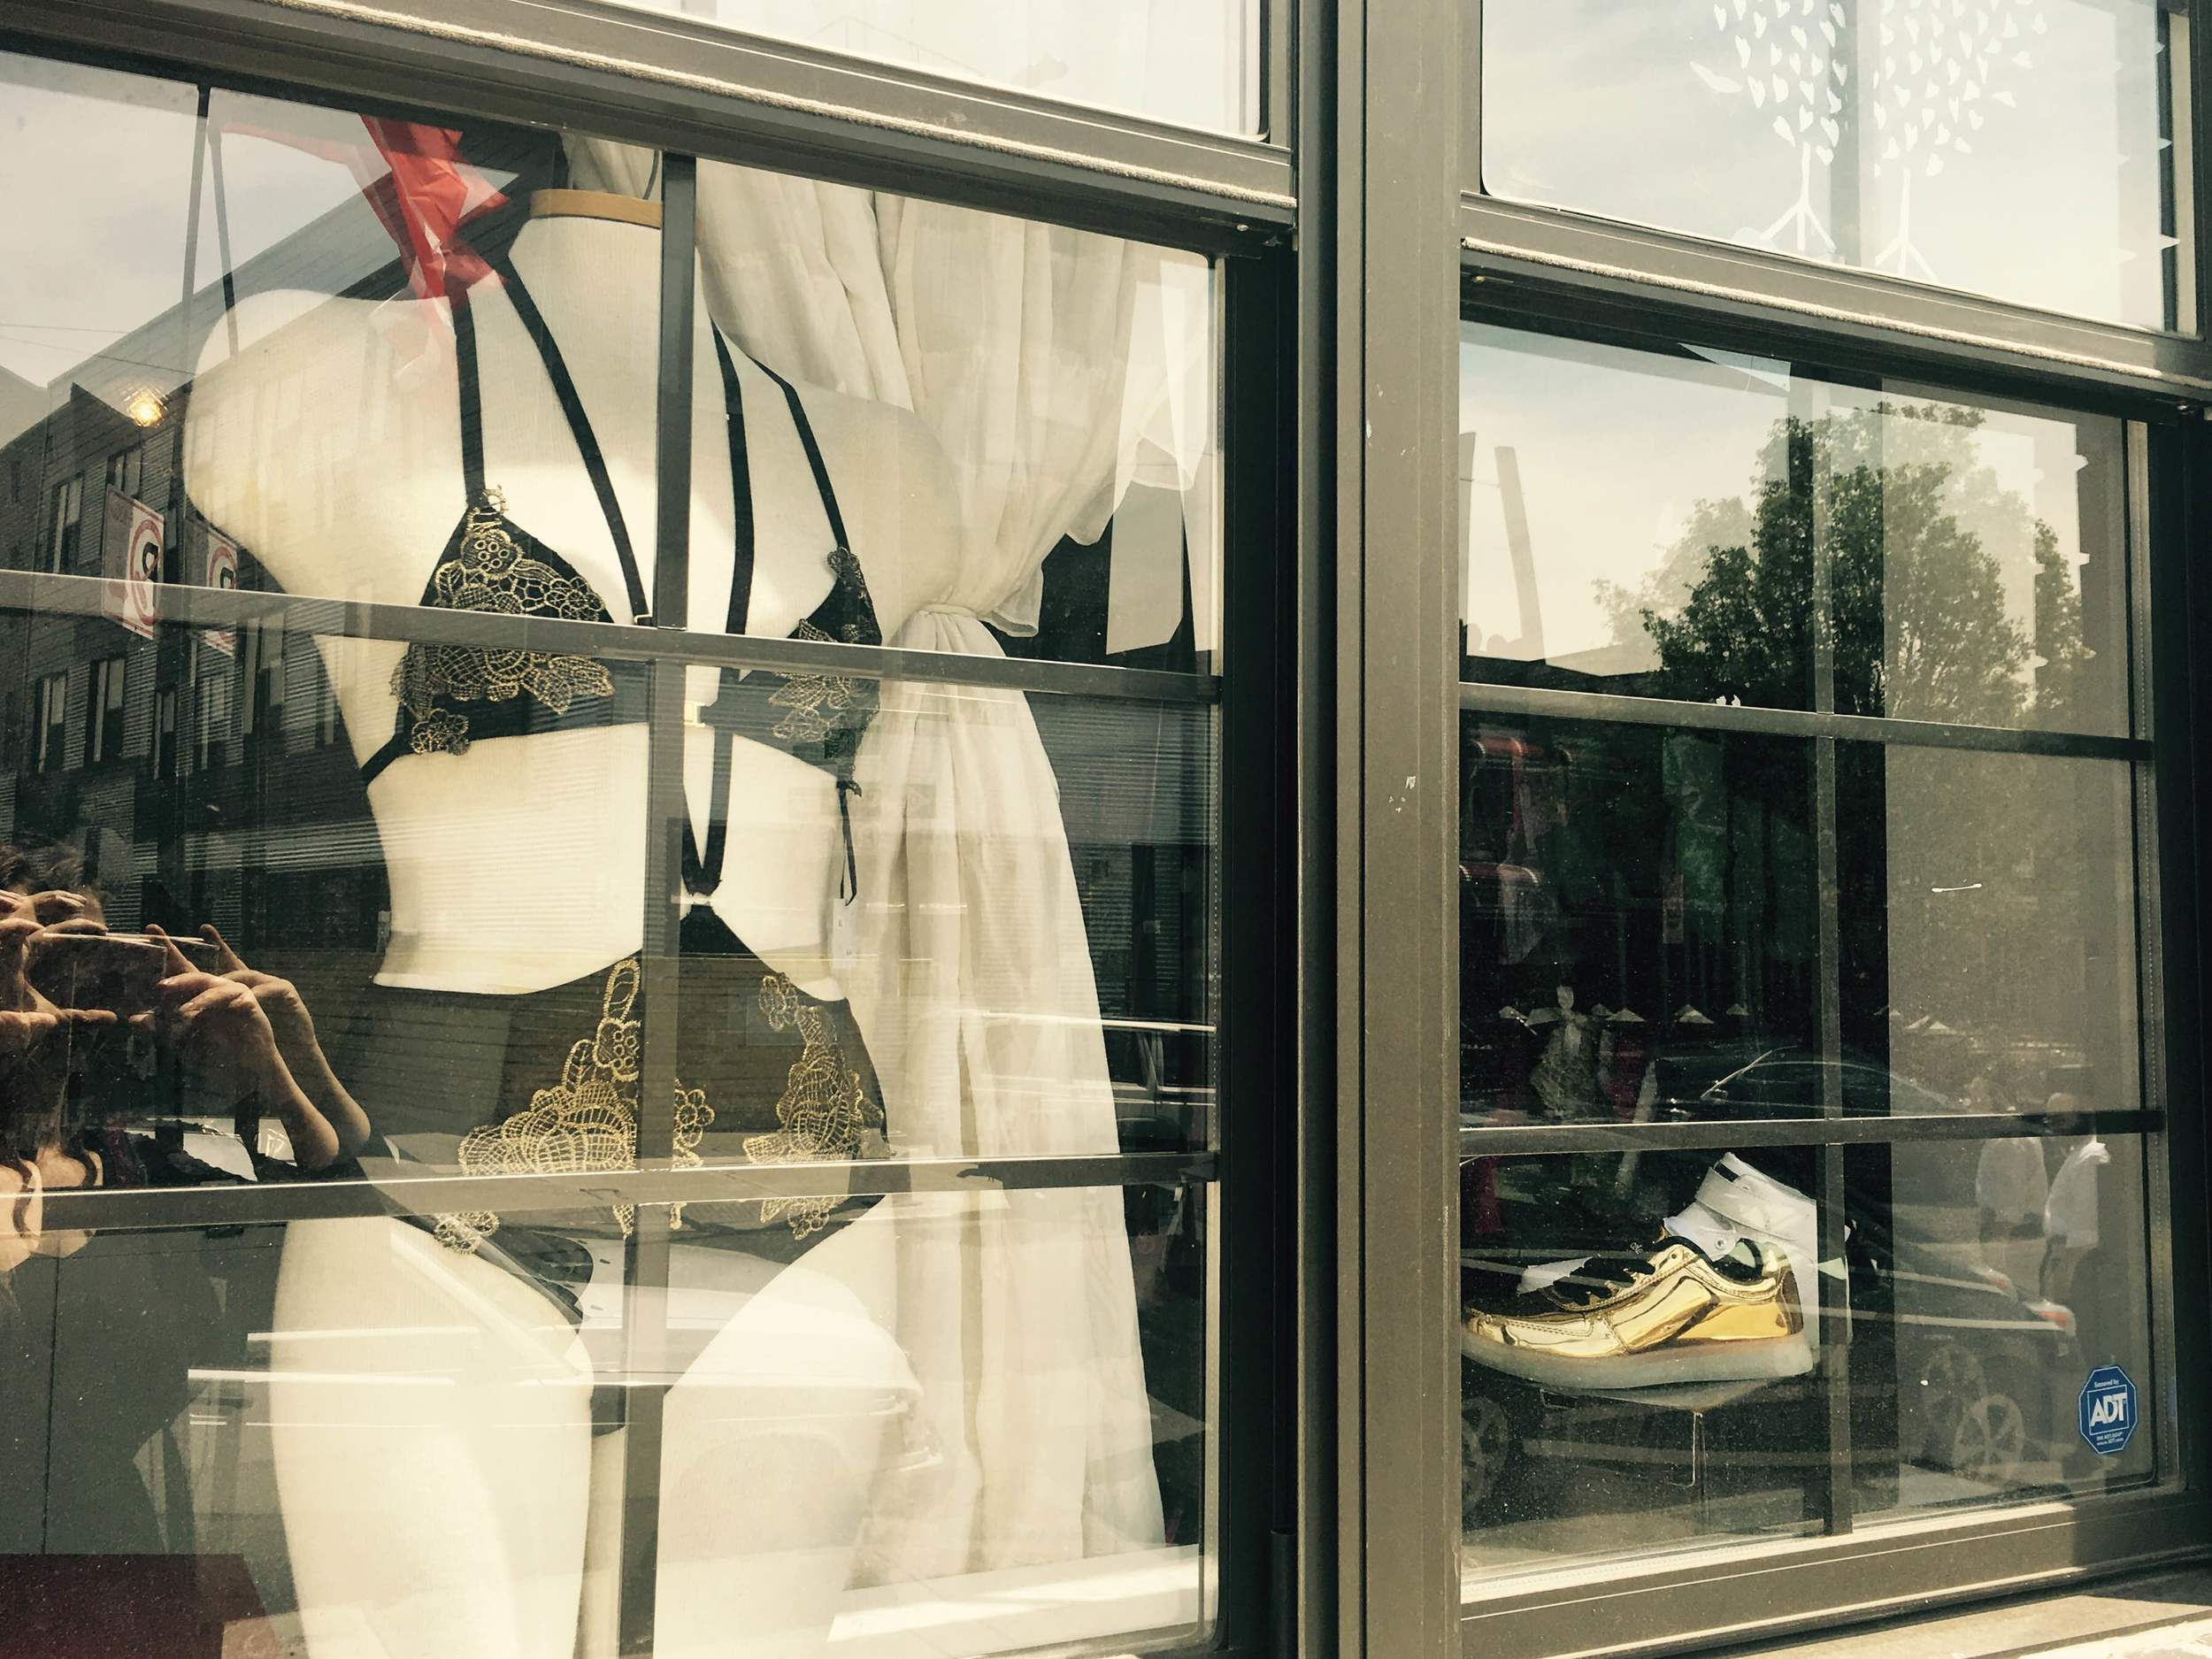 The Hope set taking pride of place in the shop window!